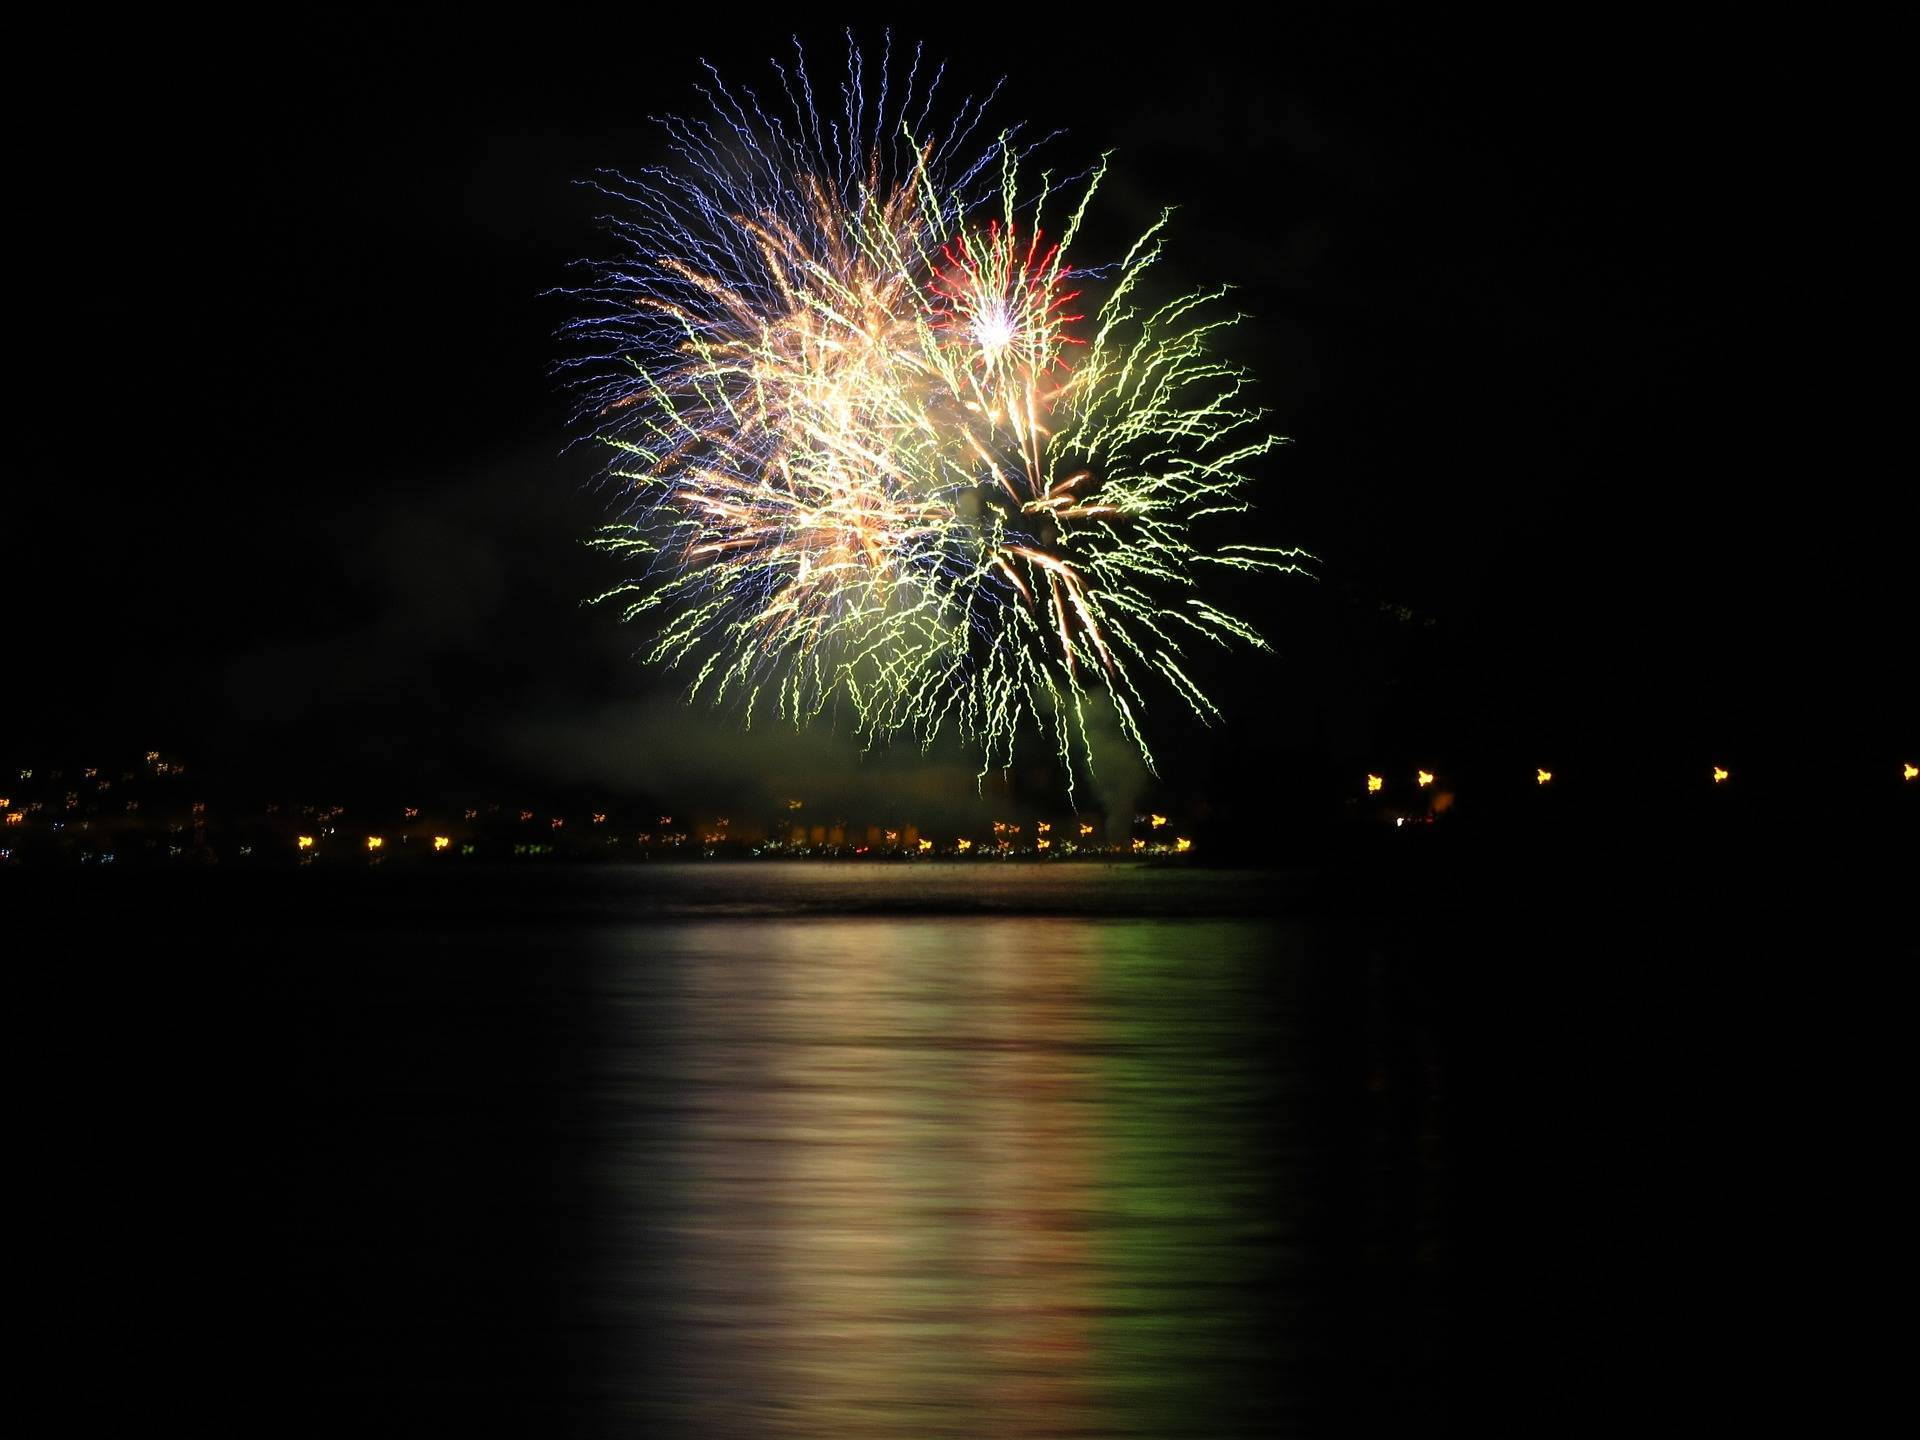 e682ad566c6aed9a9451_centered_fireworks_with_lots_of_water-919628_1920.jpg